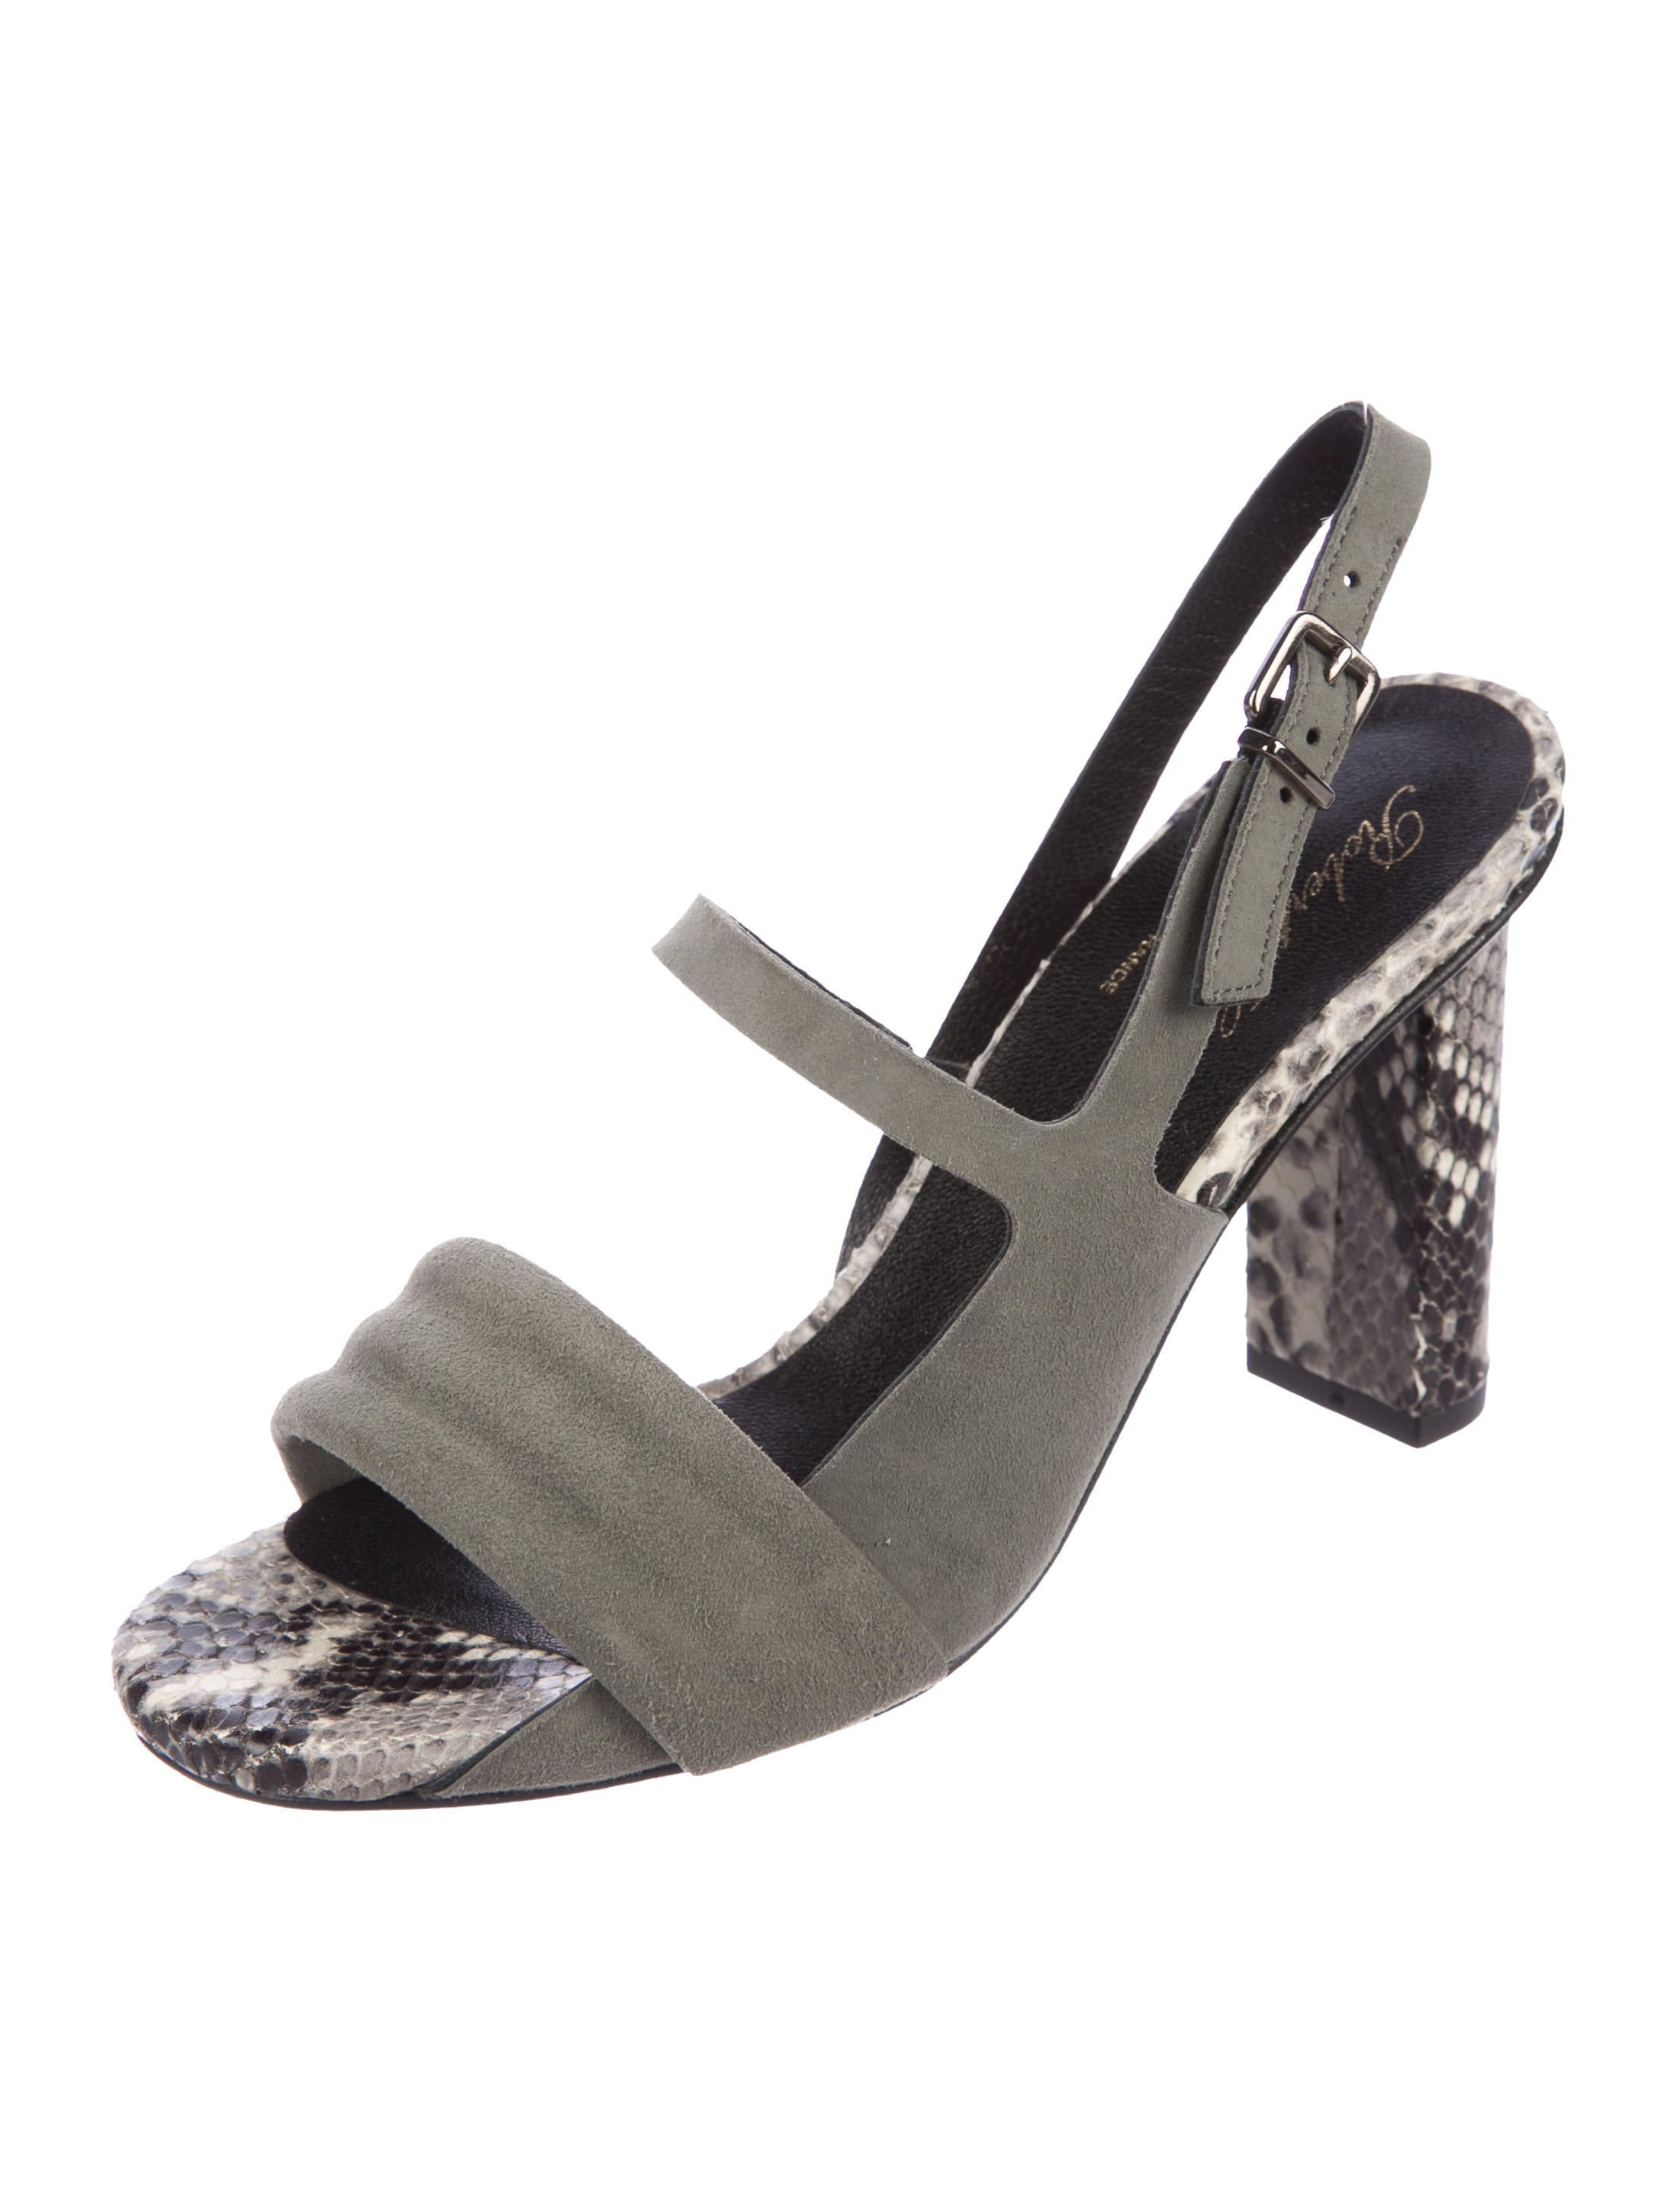 Robert Clergerie Clergerie Paris Leila Snakeskin-Accented Sandals official site uLkGmt